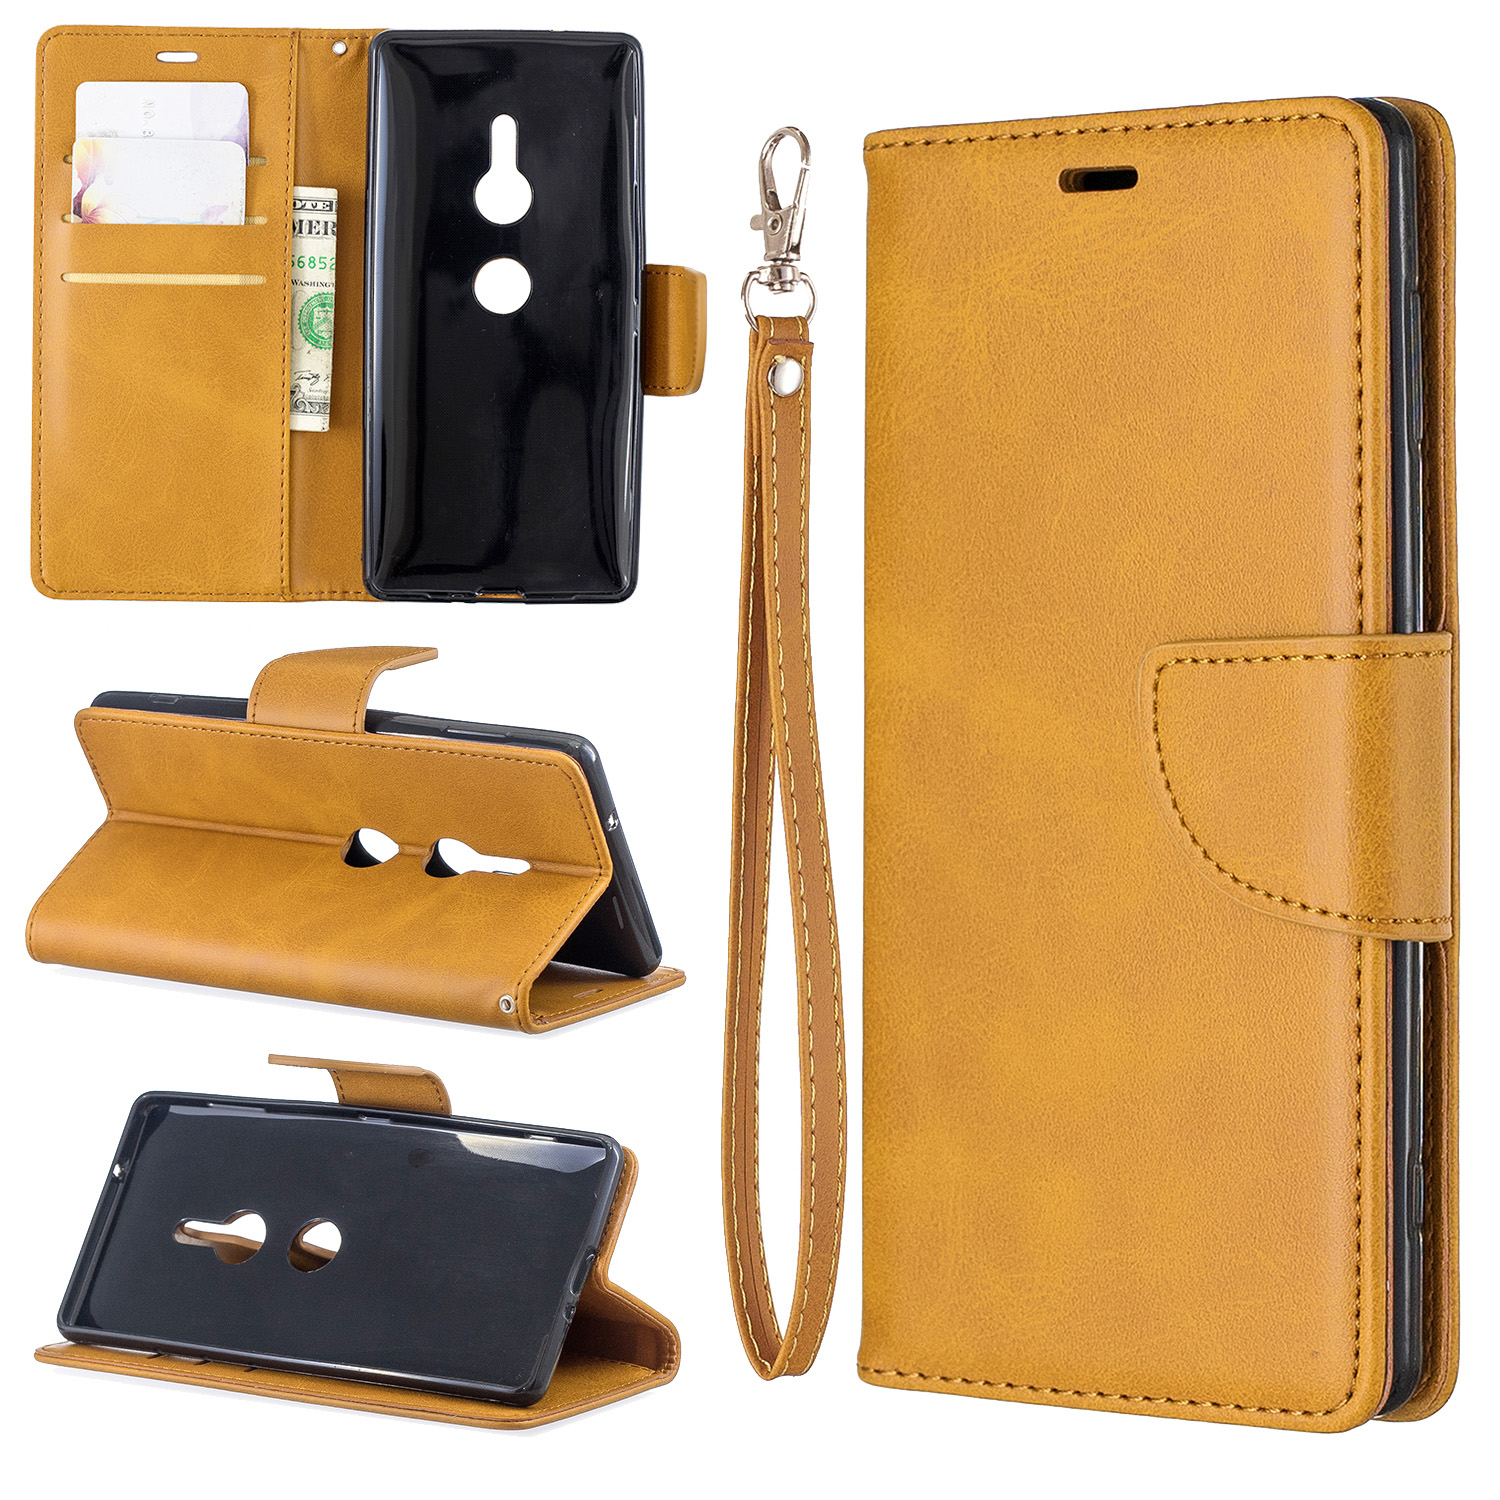 Magnetic-Flip-Card-Wallet-Leather-Phone-Case-For-Sony-Xperia-XA2-Ultra-XZ1-L3-10 thumbnail 37